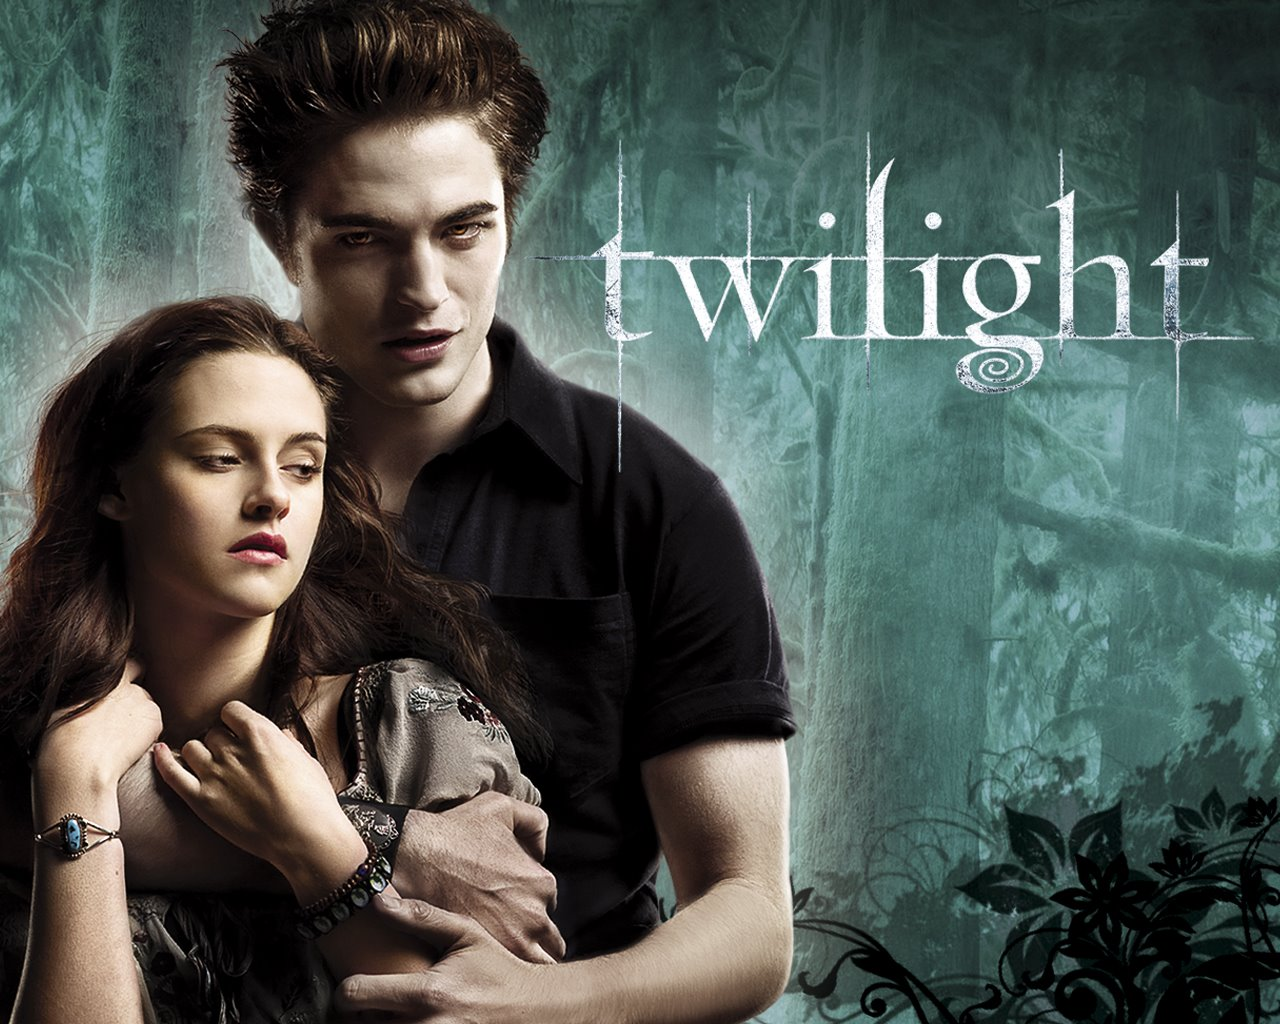 24/7: Twilight Could Get More Sequels After Breaking Dawn Part 2